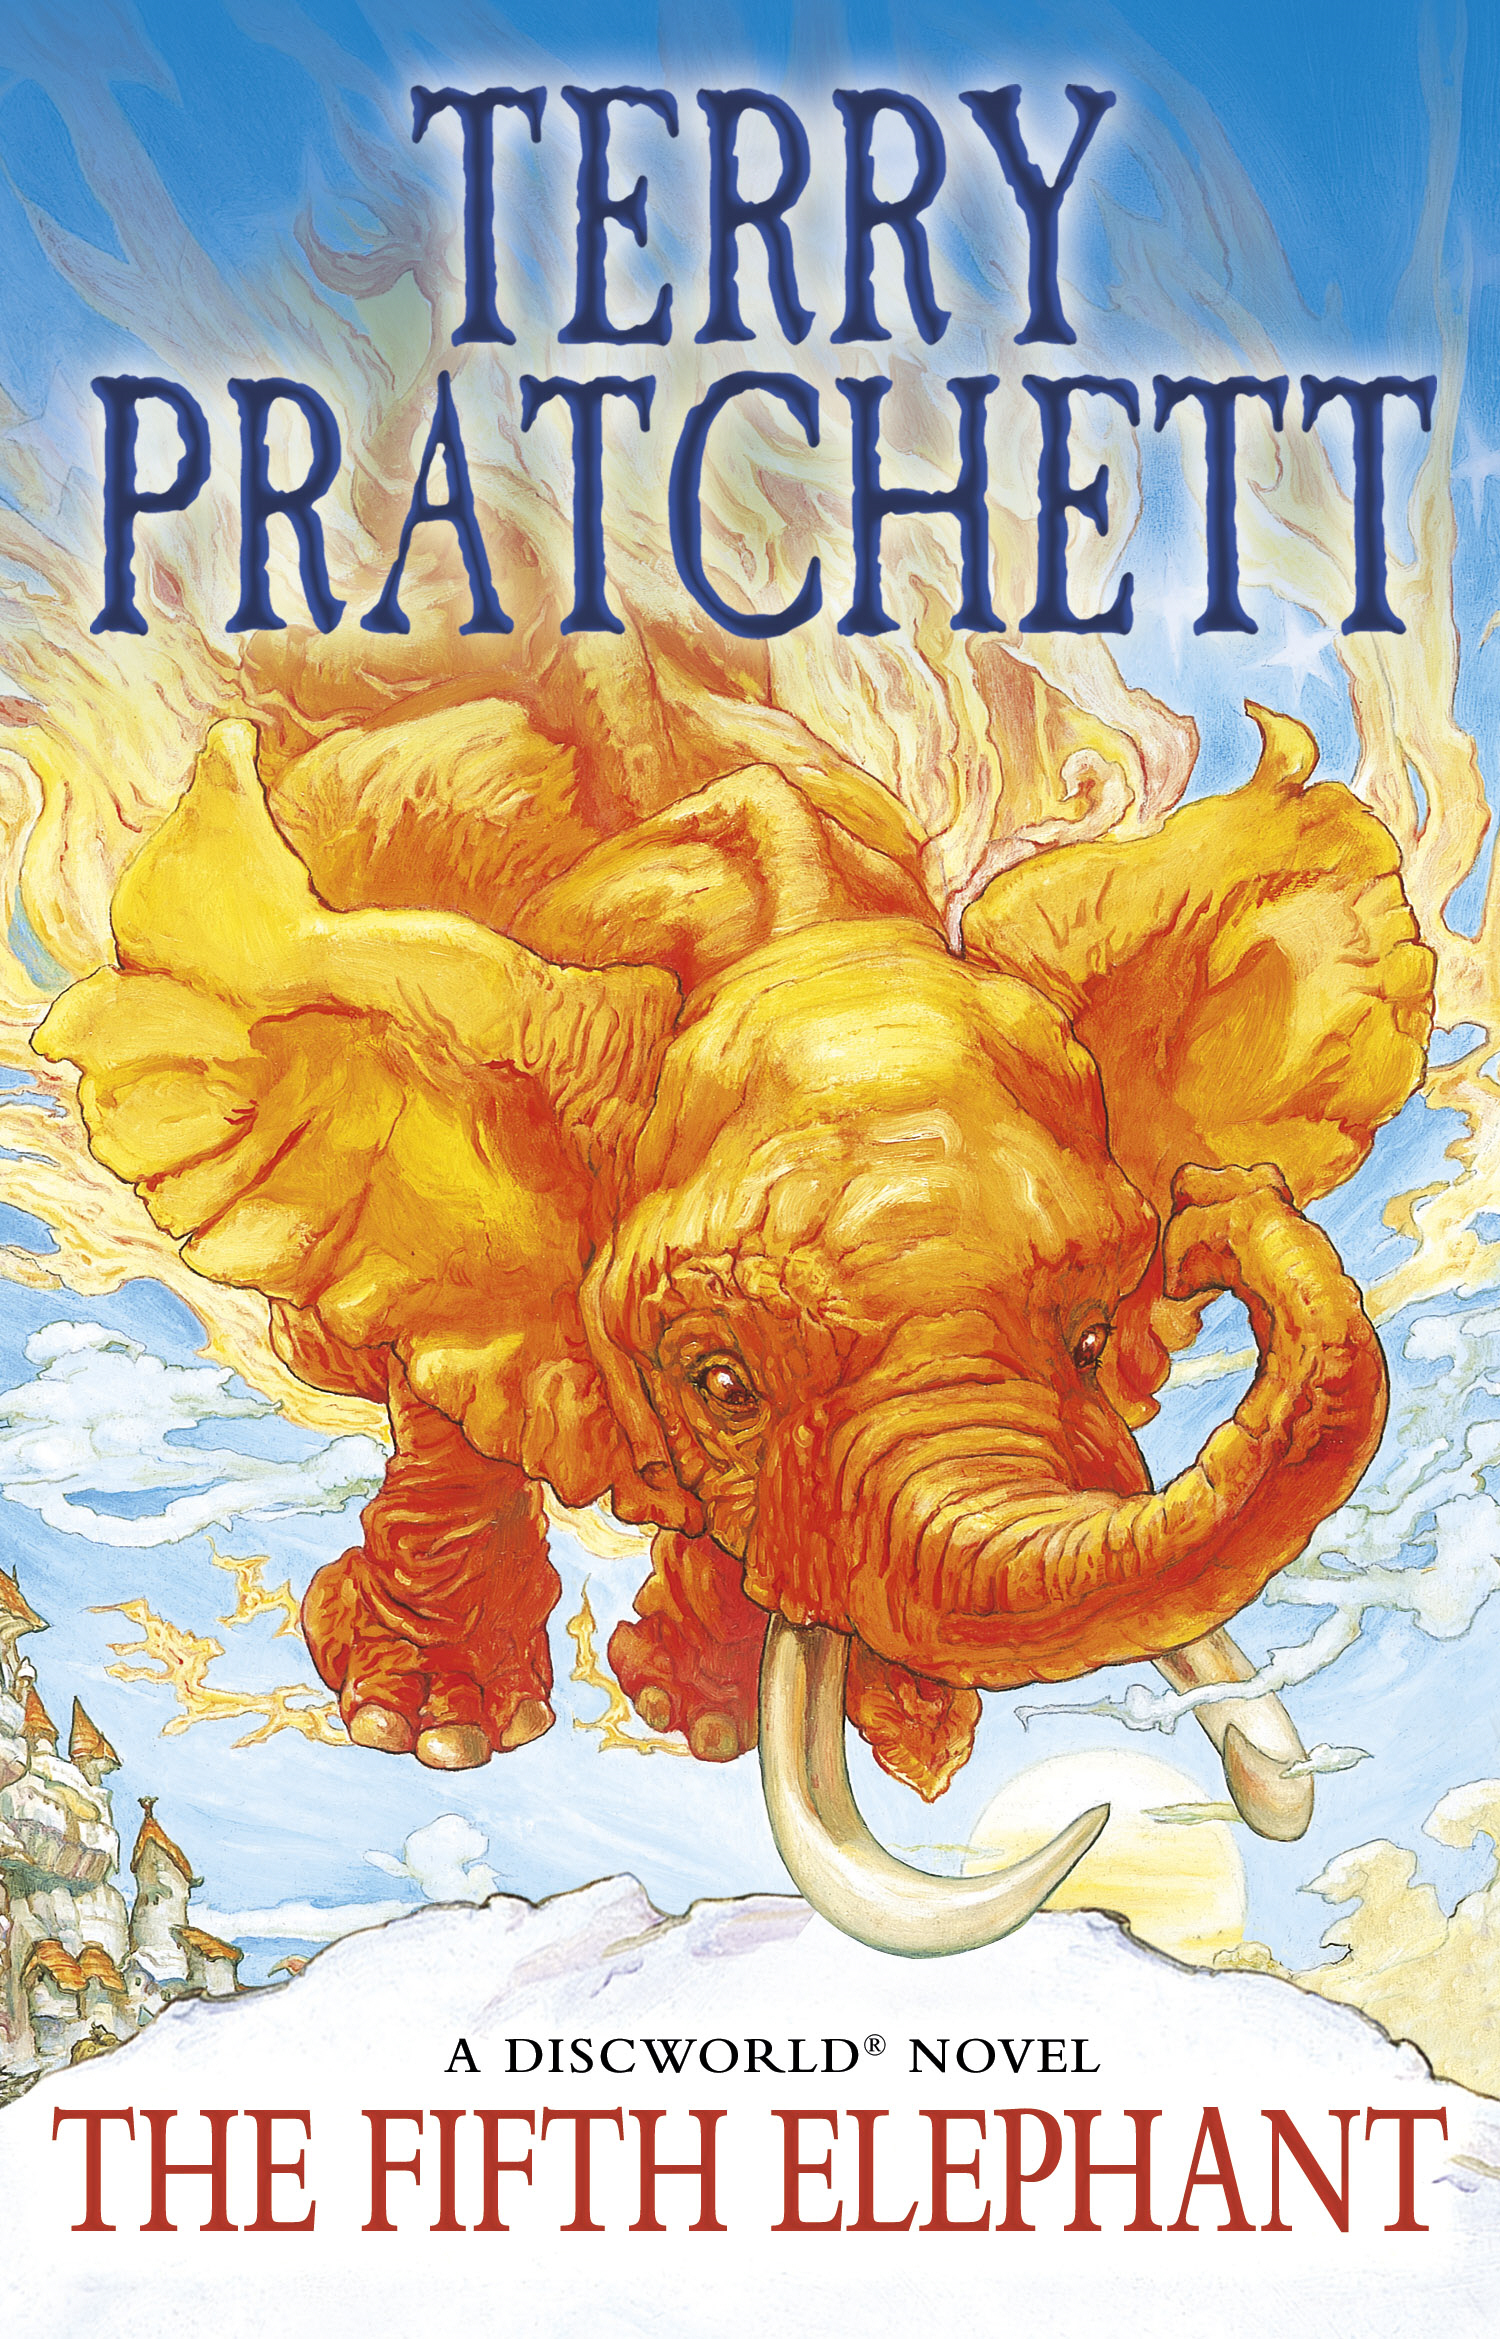 The Fifth Elephant (Discworld Novel 24)